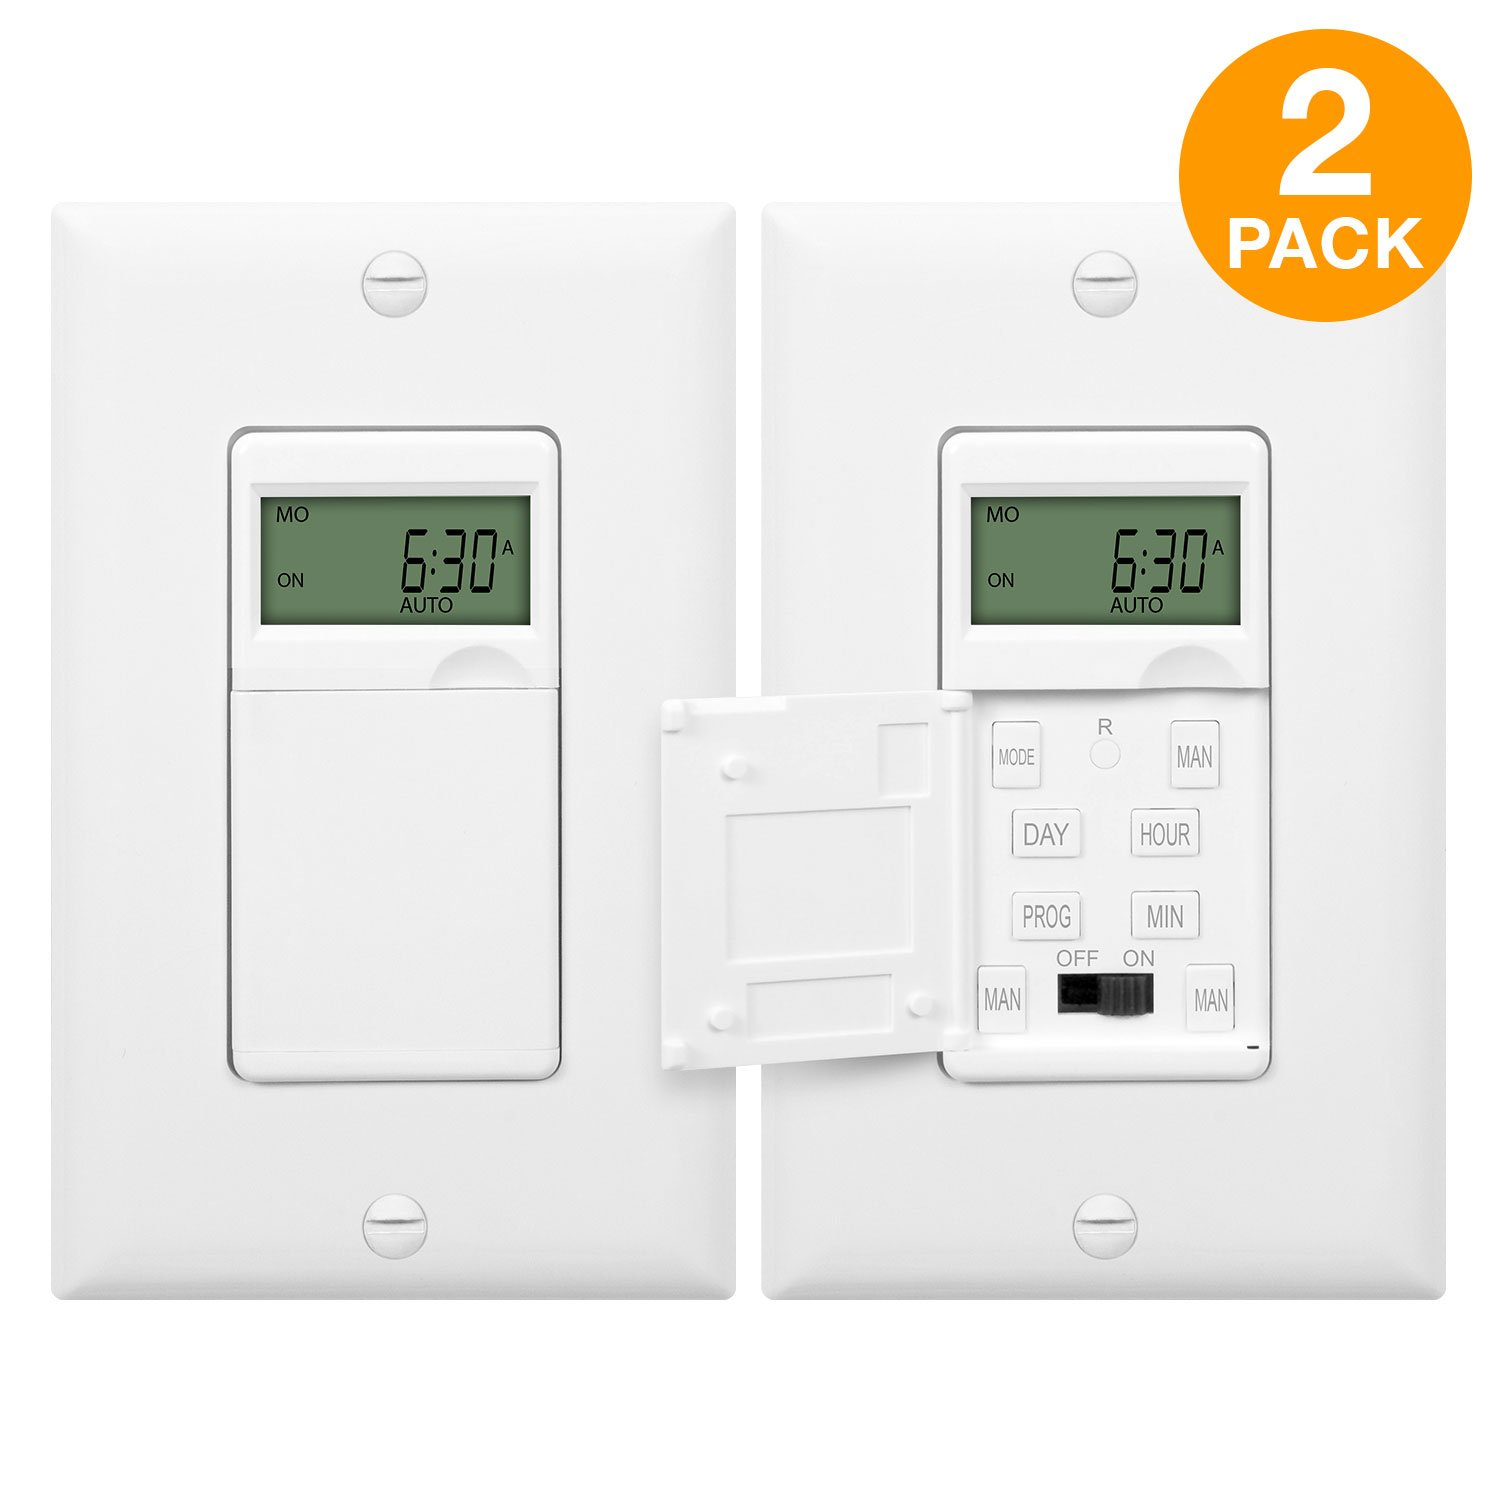 ENERLITES Programmable Digital Timer Switch for Lights, Fans, Motors, 7-Day 18 ON/OFF Timer Settings, Single Pole, Neutral Wire Required, UL Listed, HET01-C, White, 2 Pack by ENERLITES